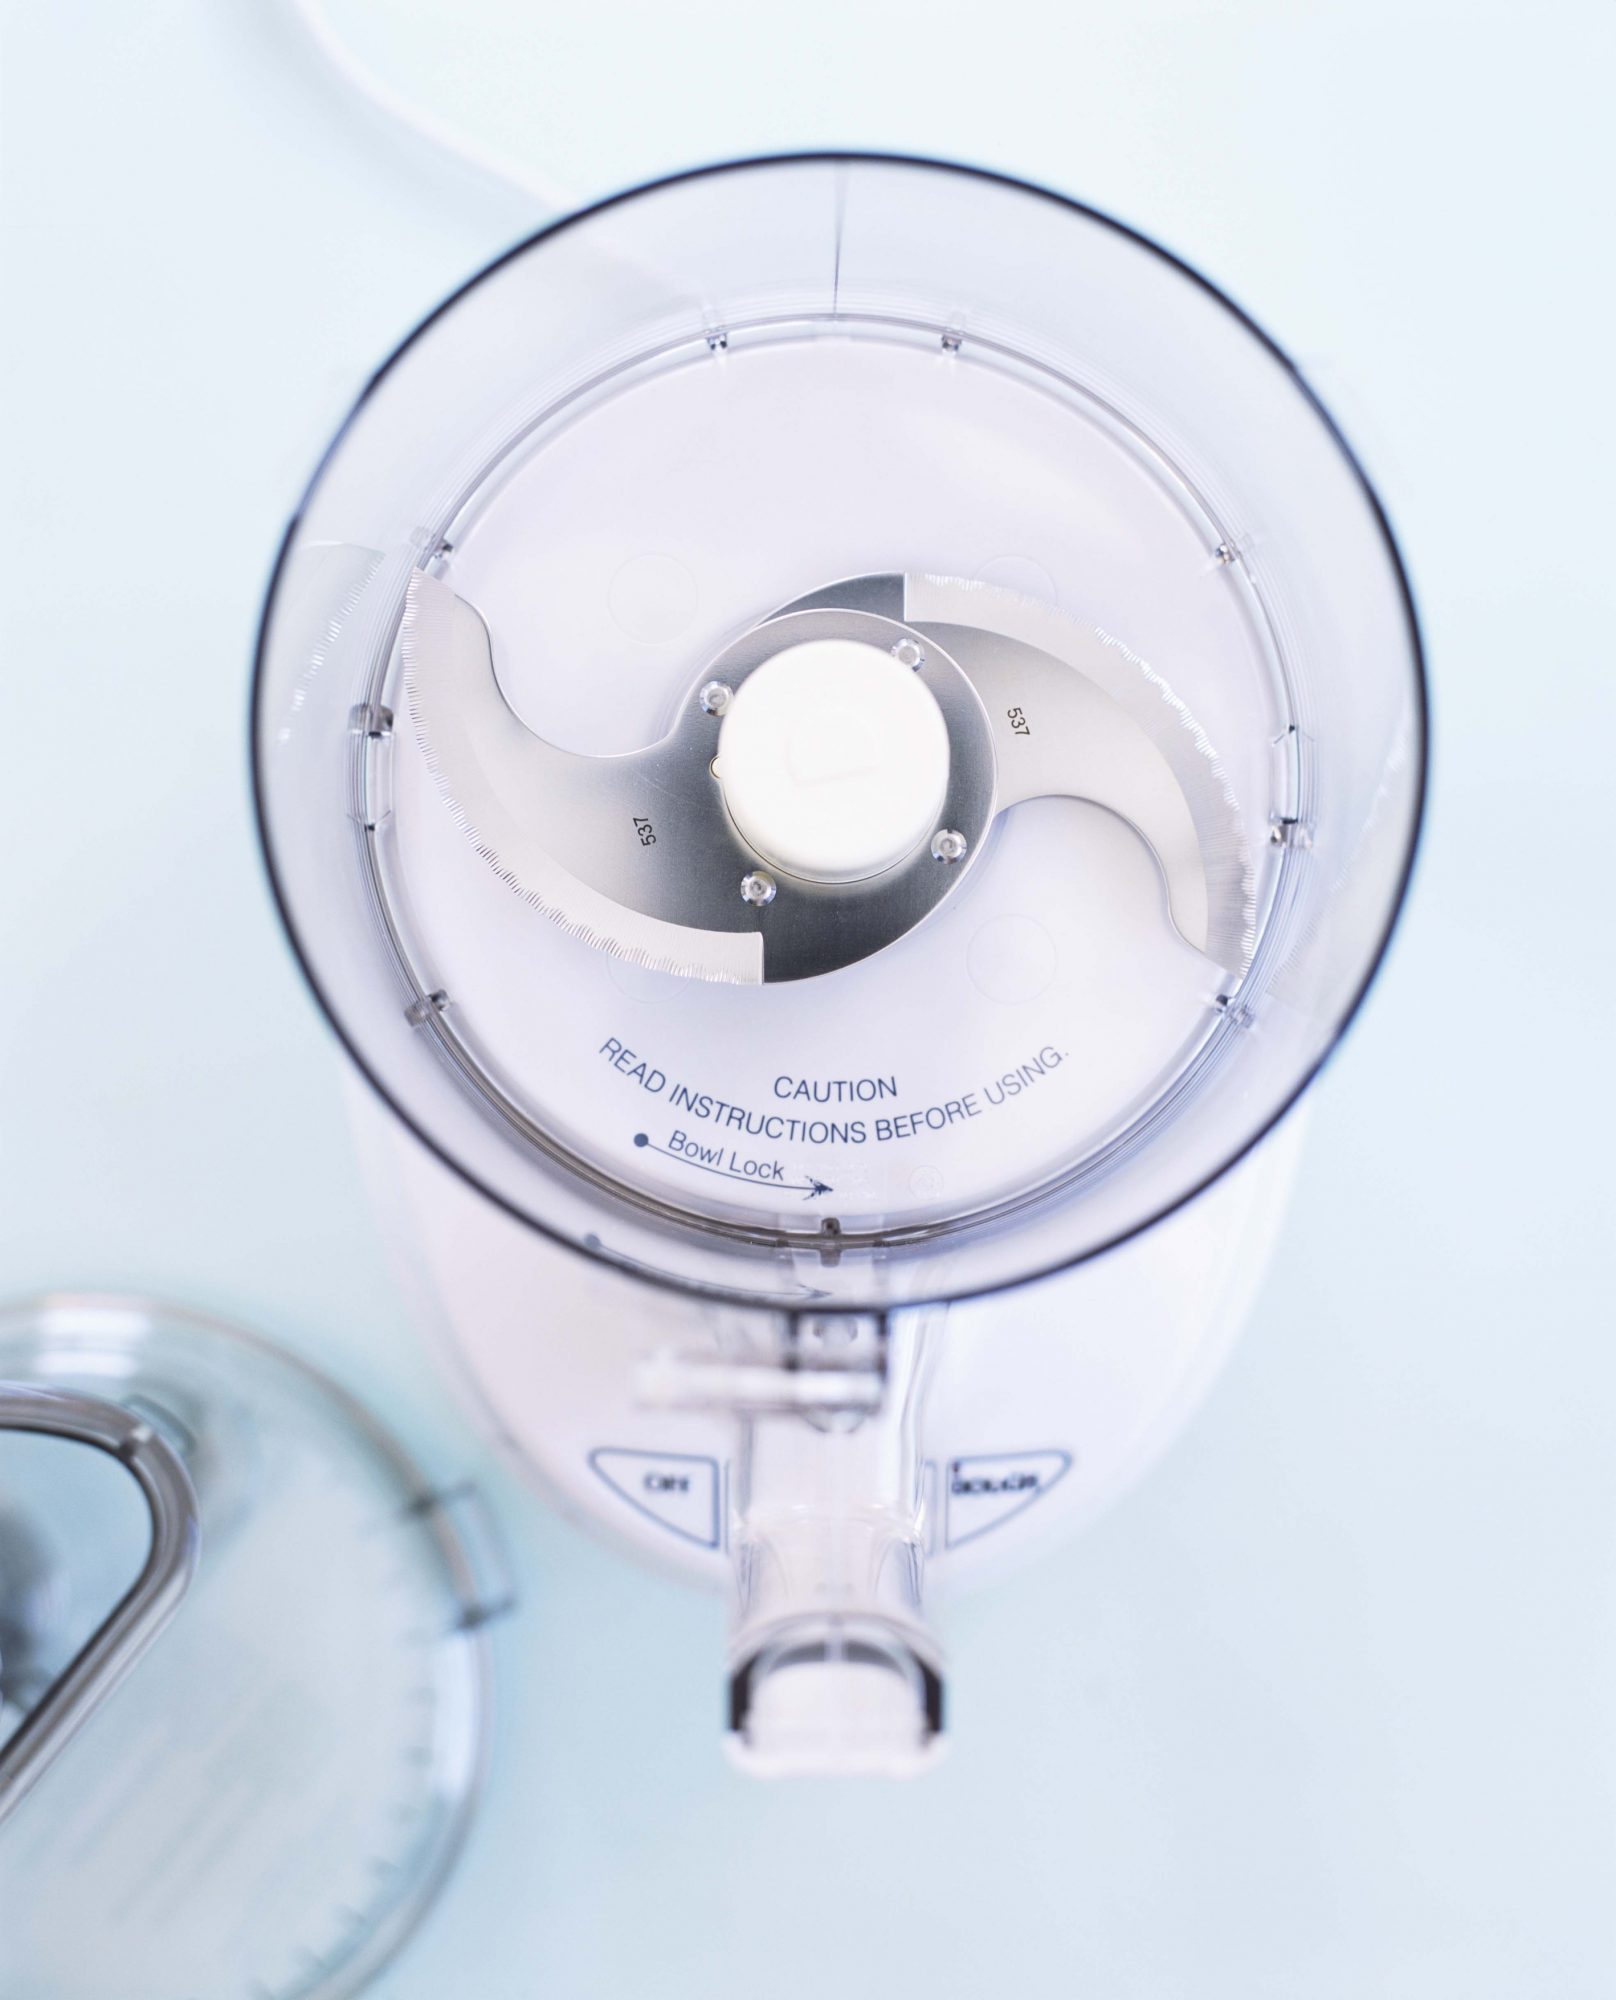 Cuisinart Recalls 8 Million Food Processors Over Safety Concerns